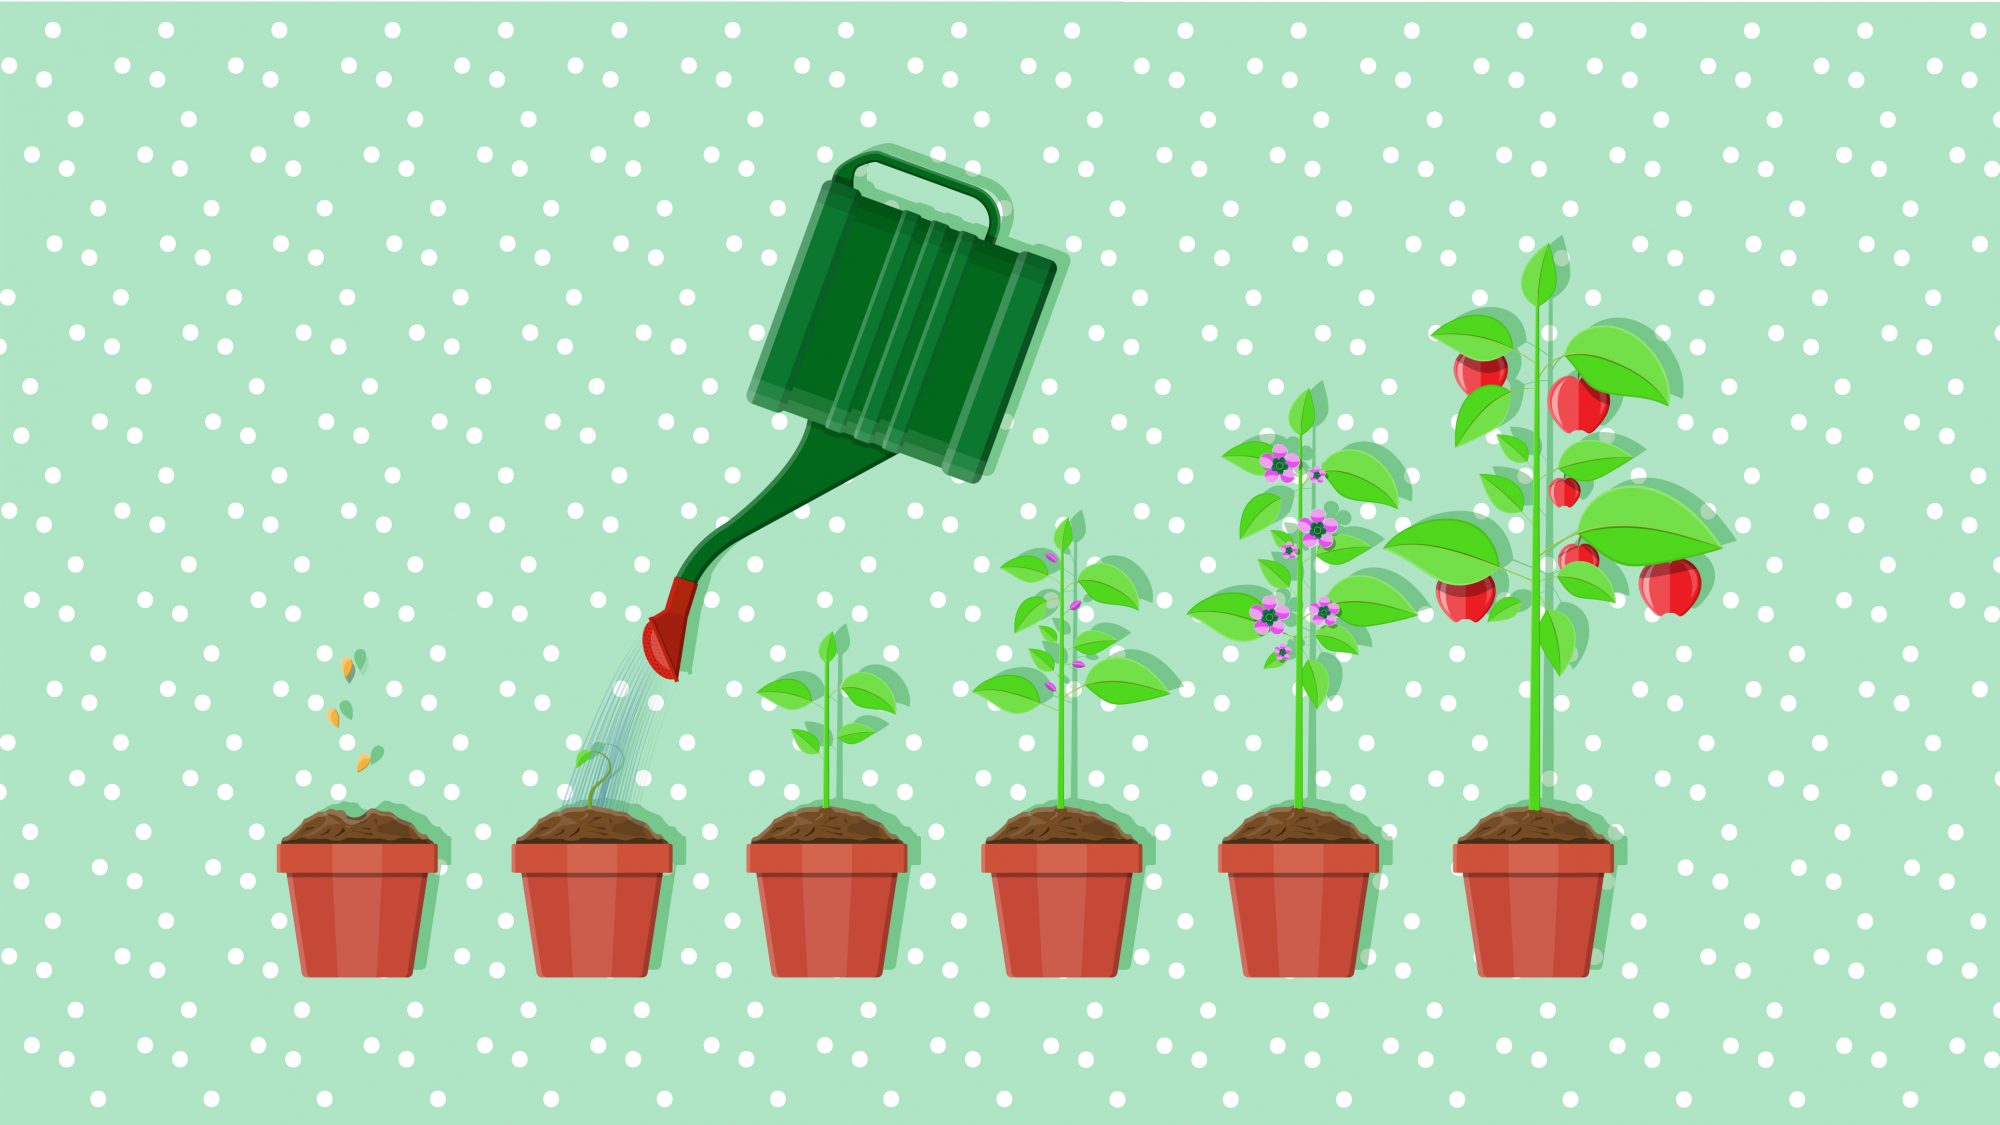 Gardening Advice - gardening tips and more